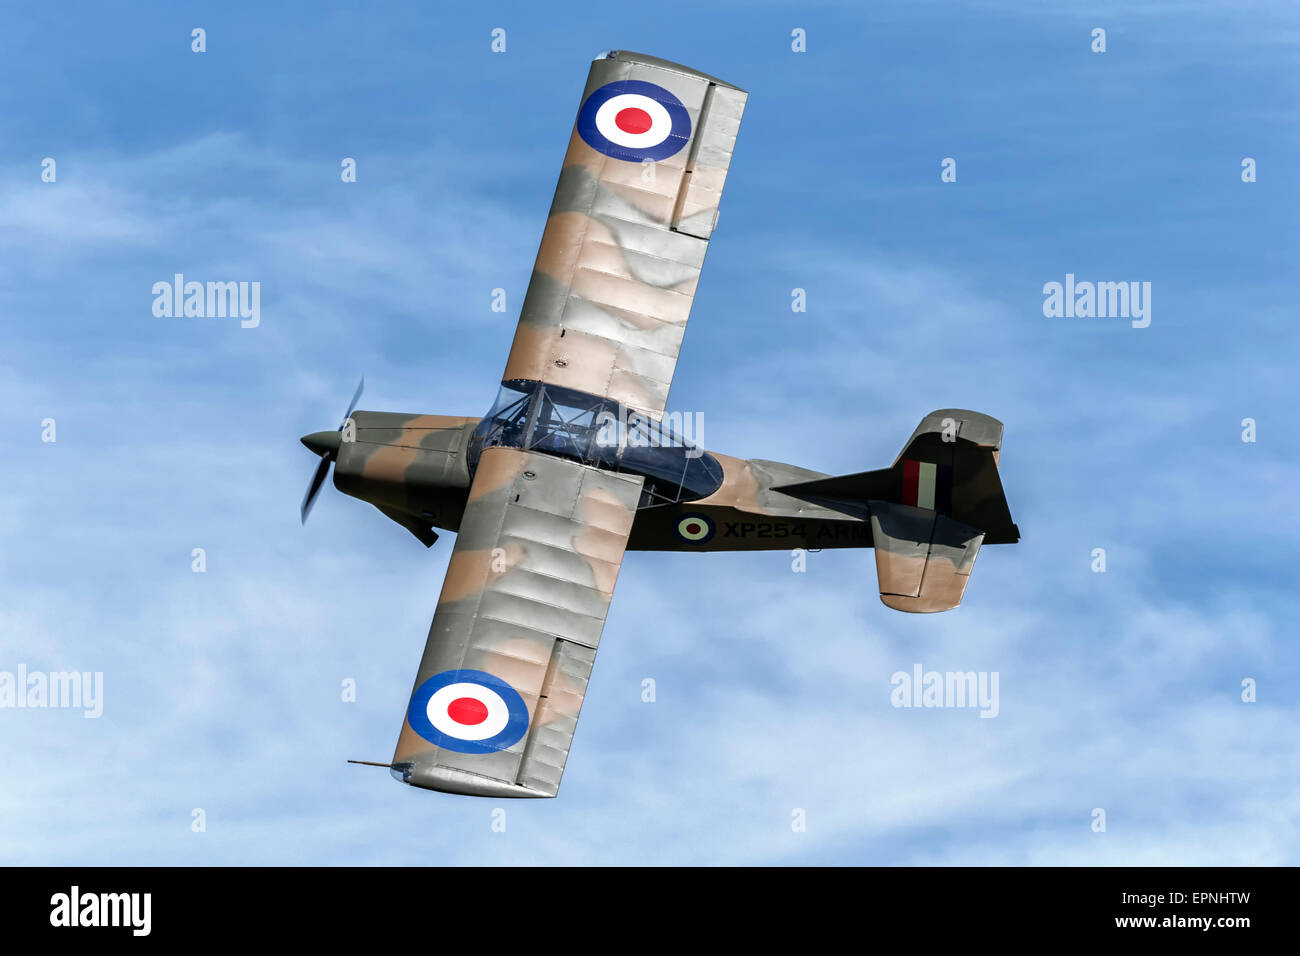 Auster AOP9 spotter aircraft of the British Army - Stock Image